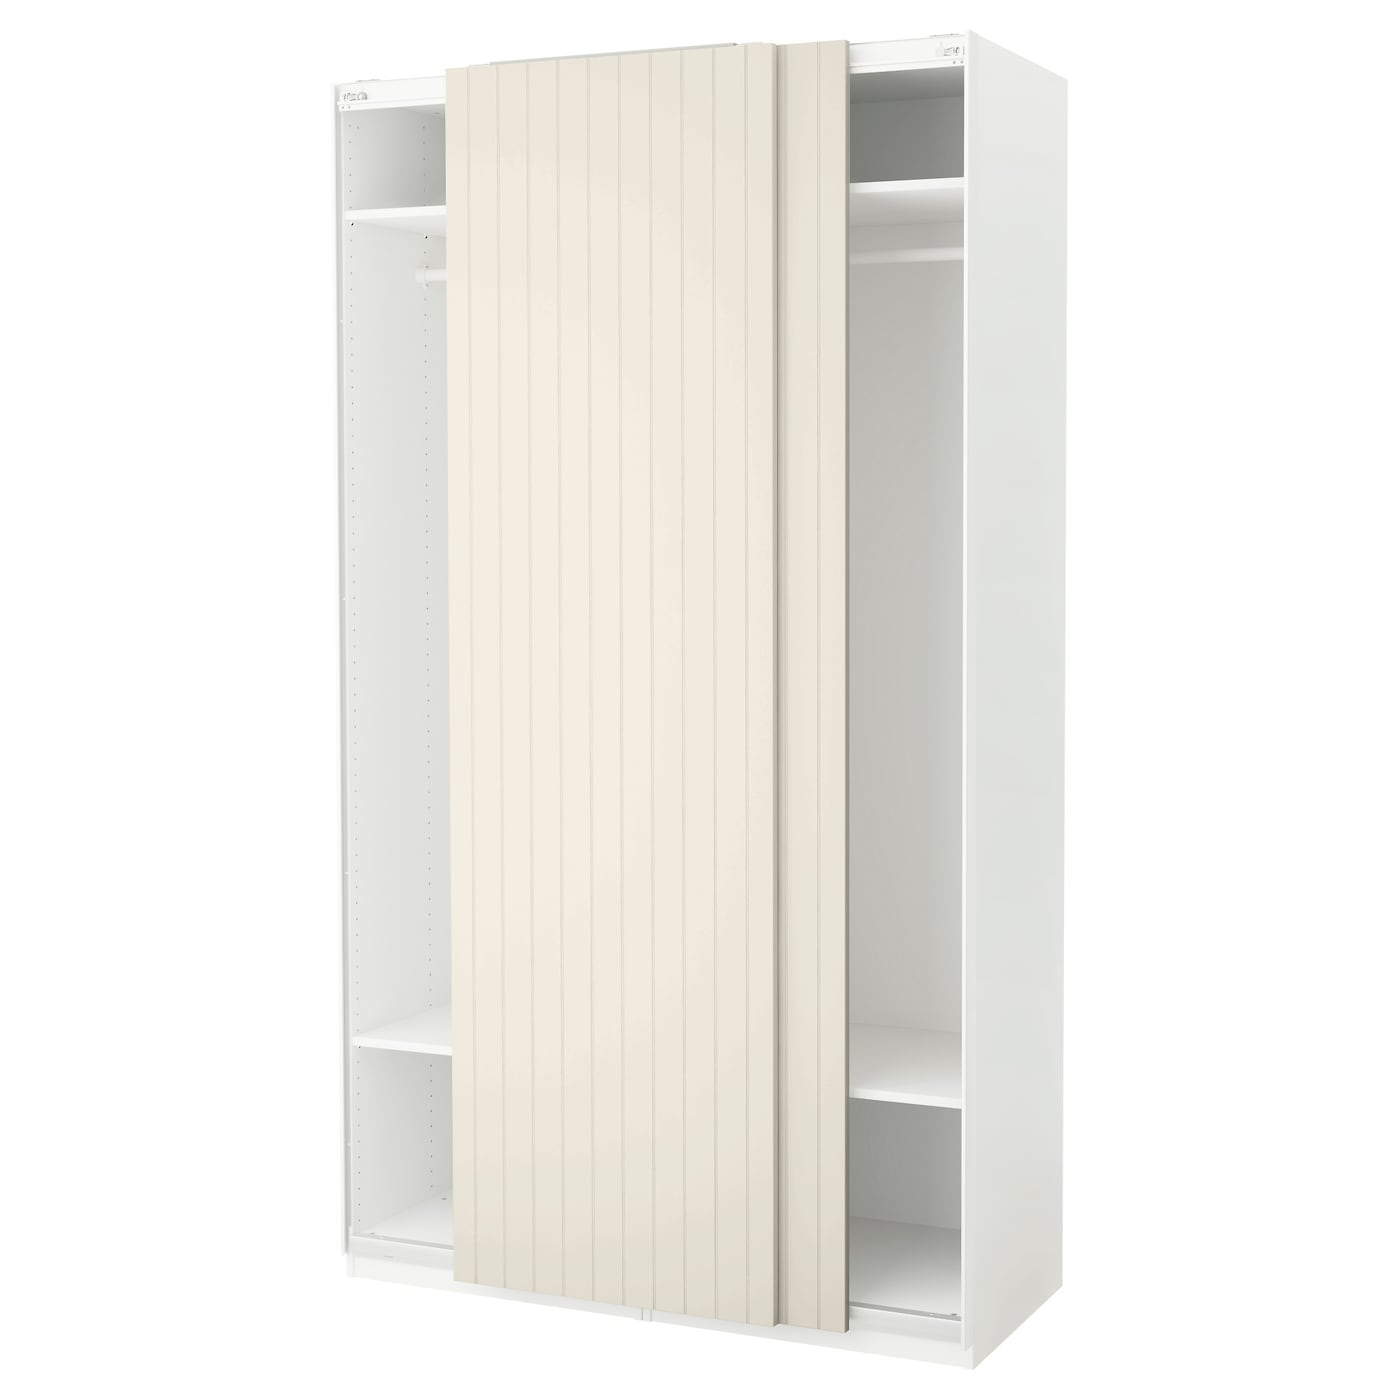 pax wardrobe white bergsfjord white 150x66x236 cm ikea. Black Bedroom Furniture Sets. Home Design Ideas